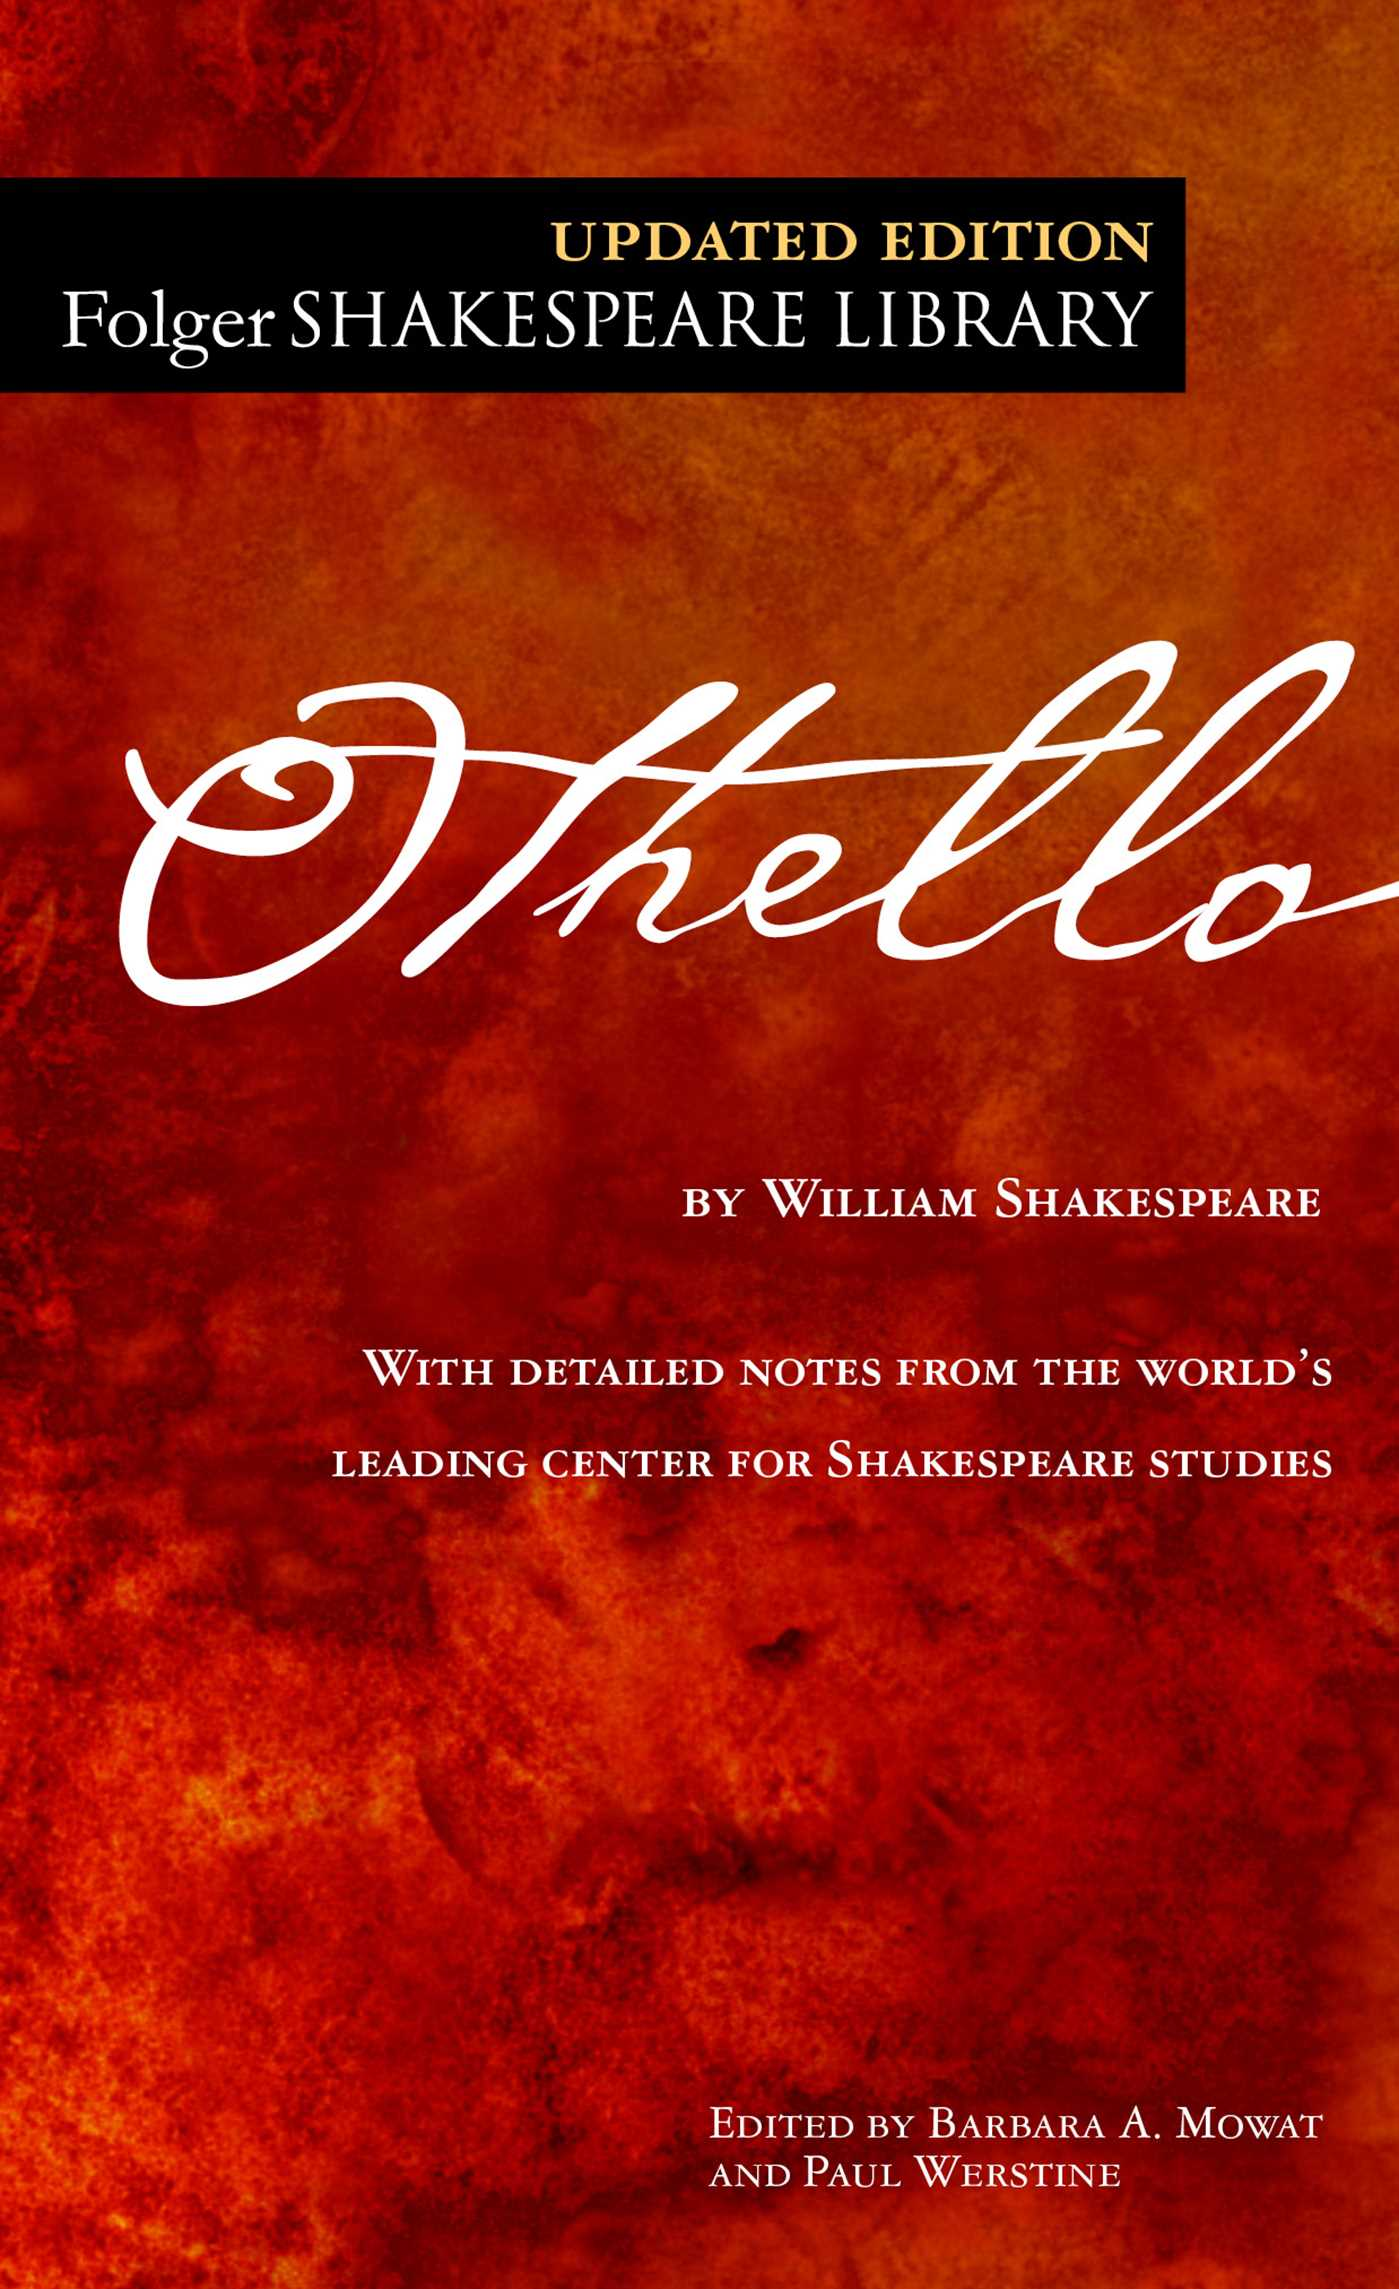 Othello 9780743477550 hr